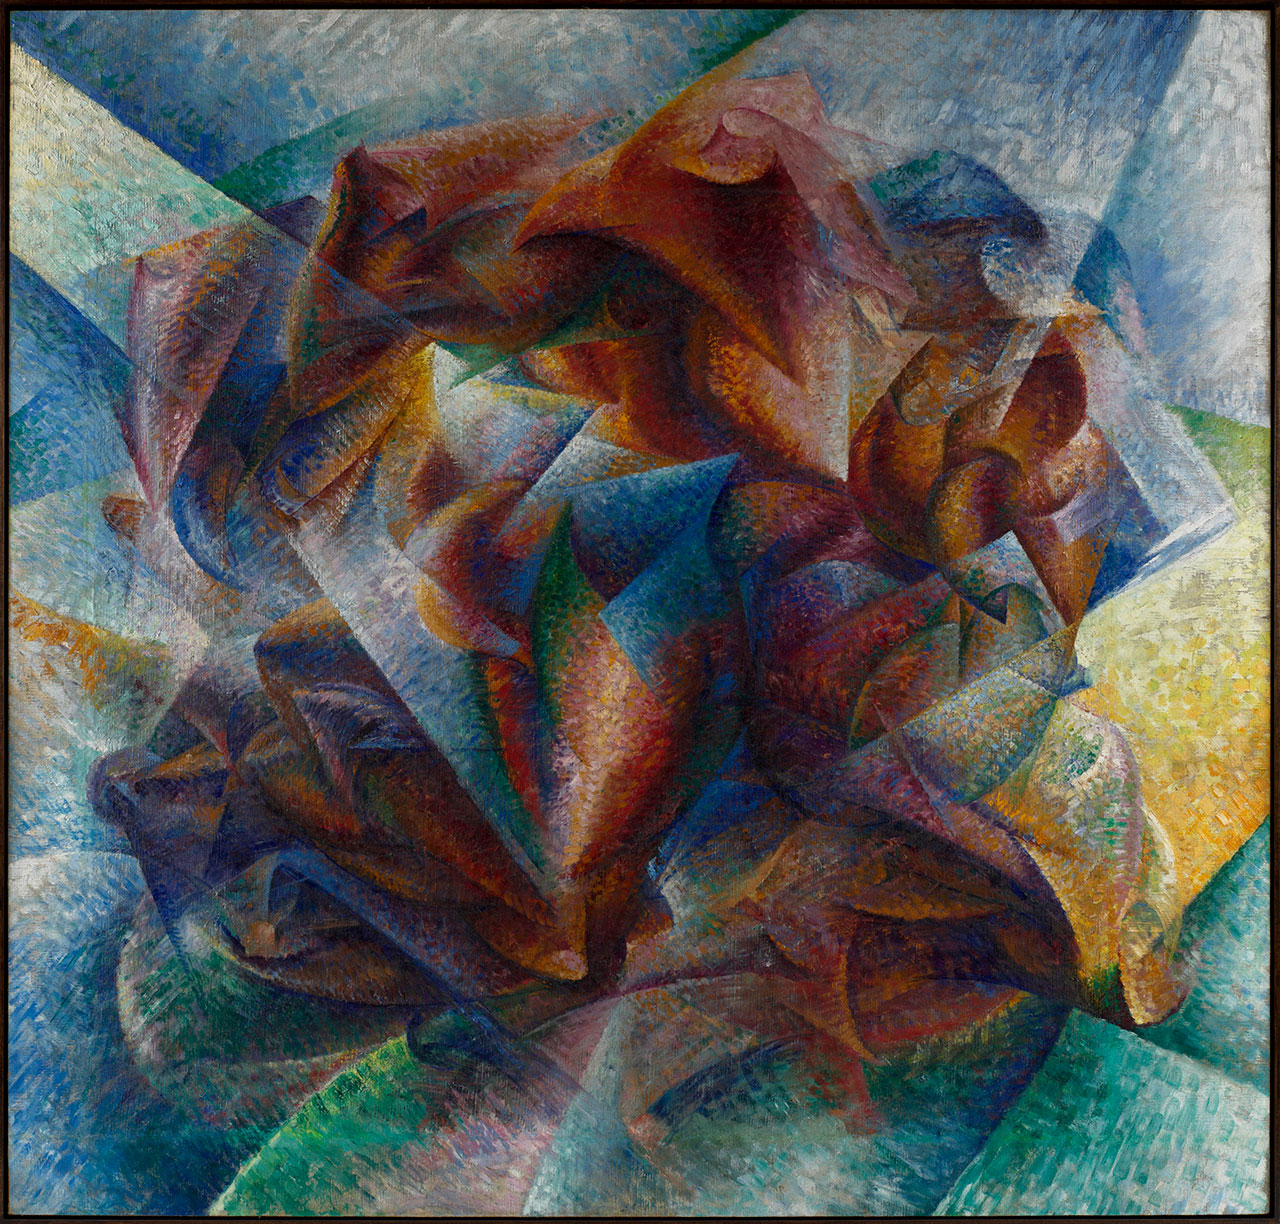 Umberto Boccioni, Dinamismo di un footballer, 1913. Oil on canvas, 93,2 x 201cm. Museum of Modern Art (MoMA), New York © 2017. Digital Image, The Museum of Modern Art, New York / Scala, Firenze.